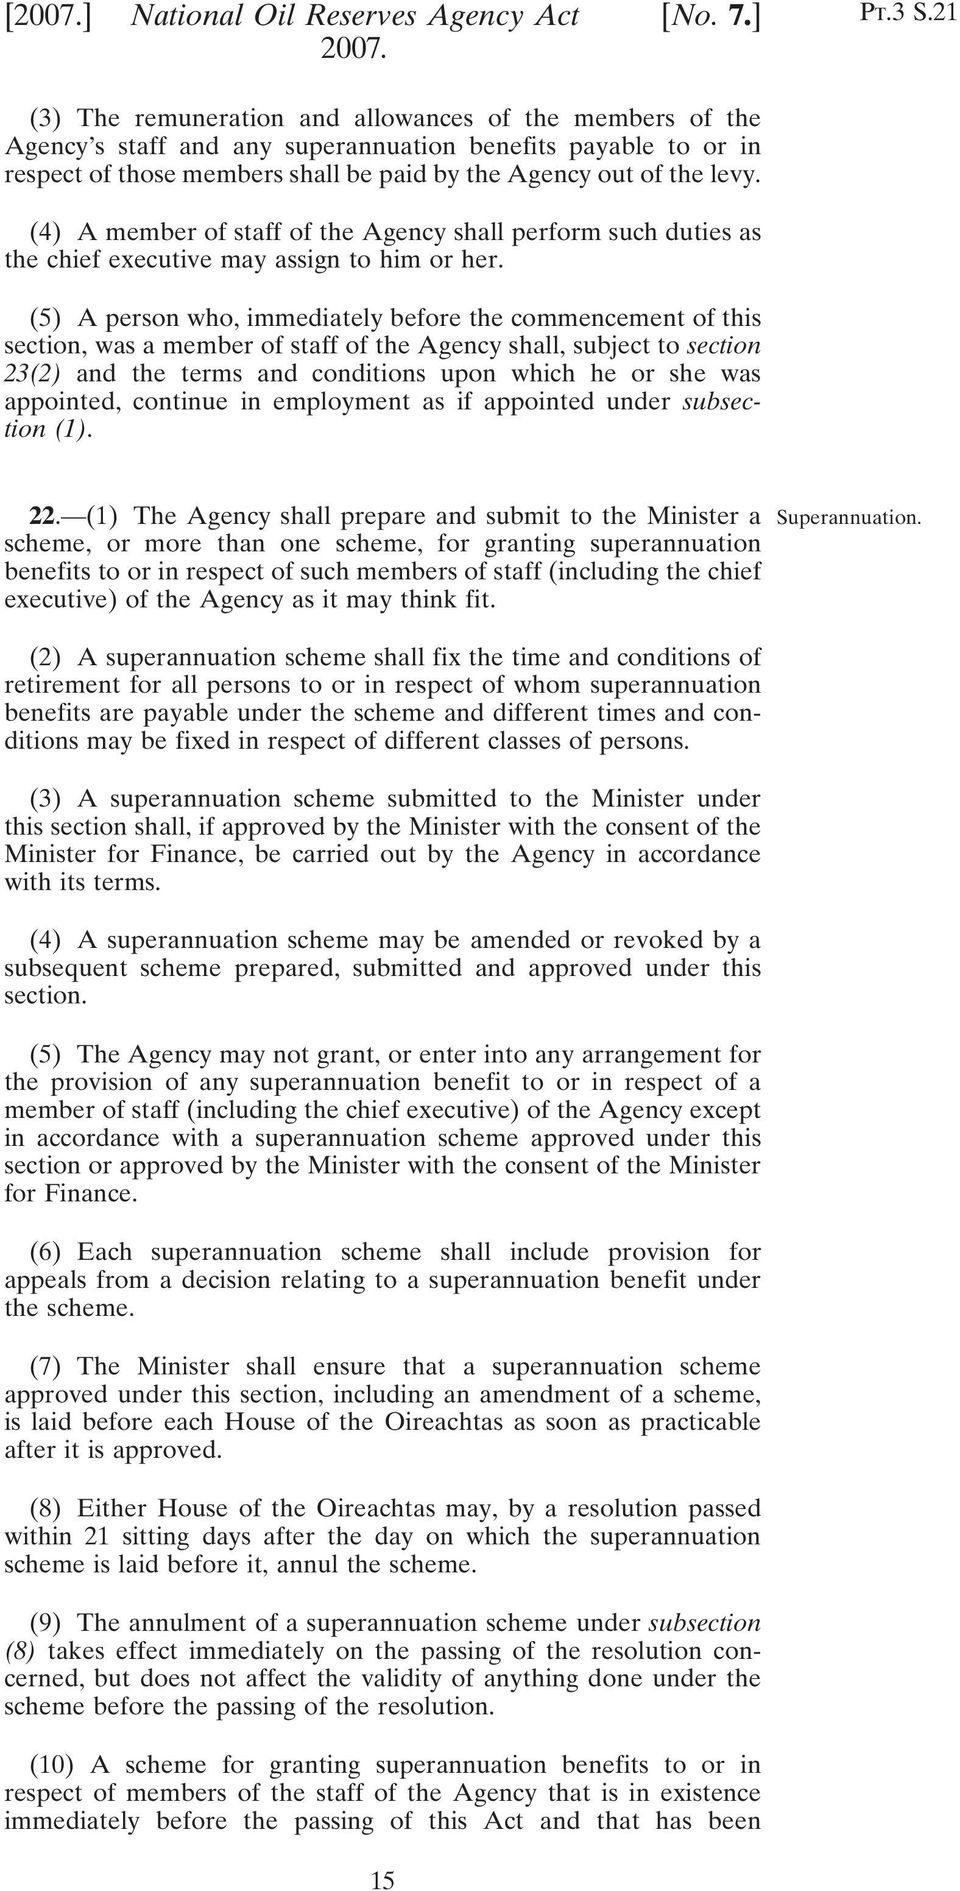 (4) A member of staff of the Agency shall perform such duties as the chief executive may assign to him or her.